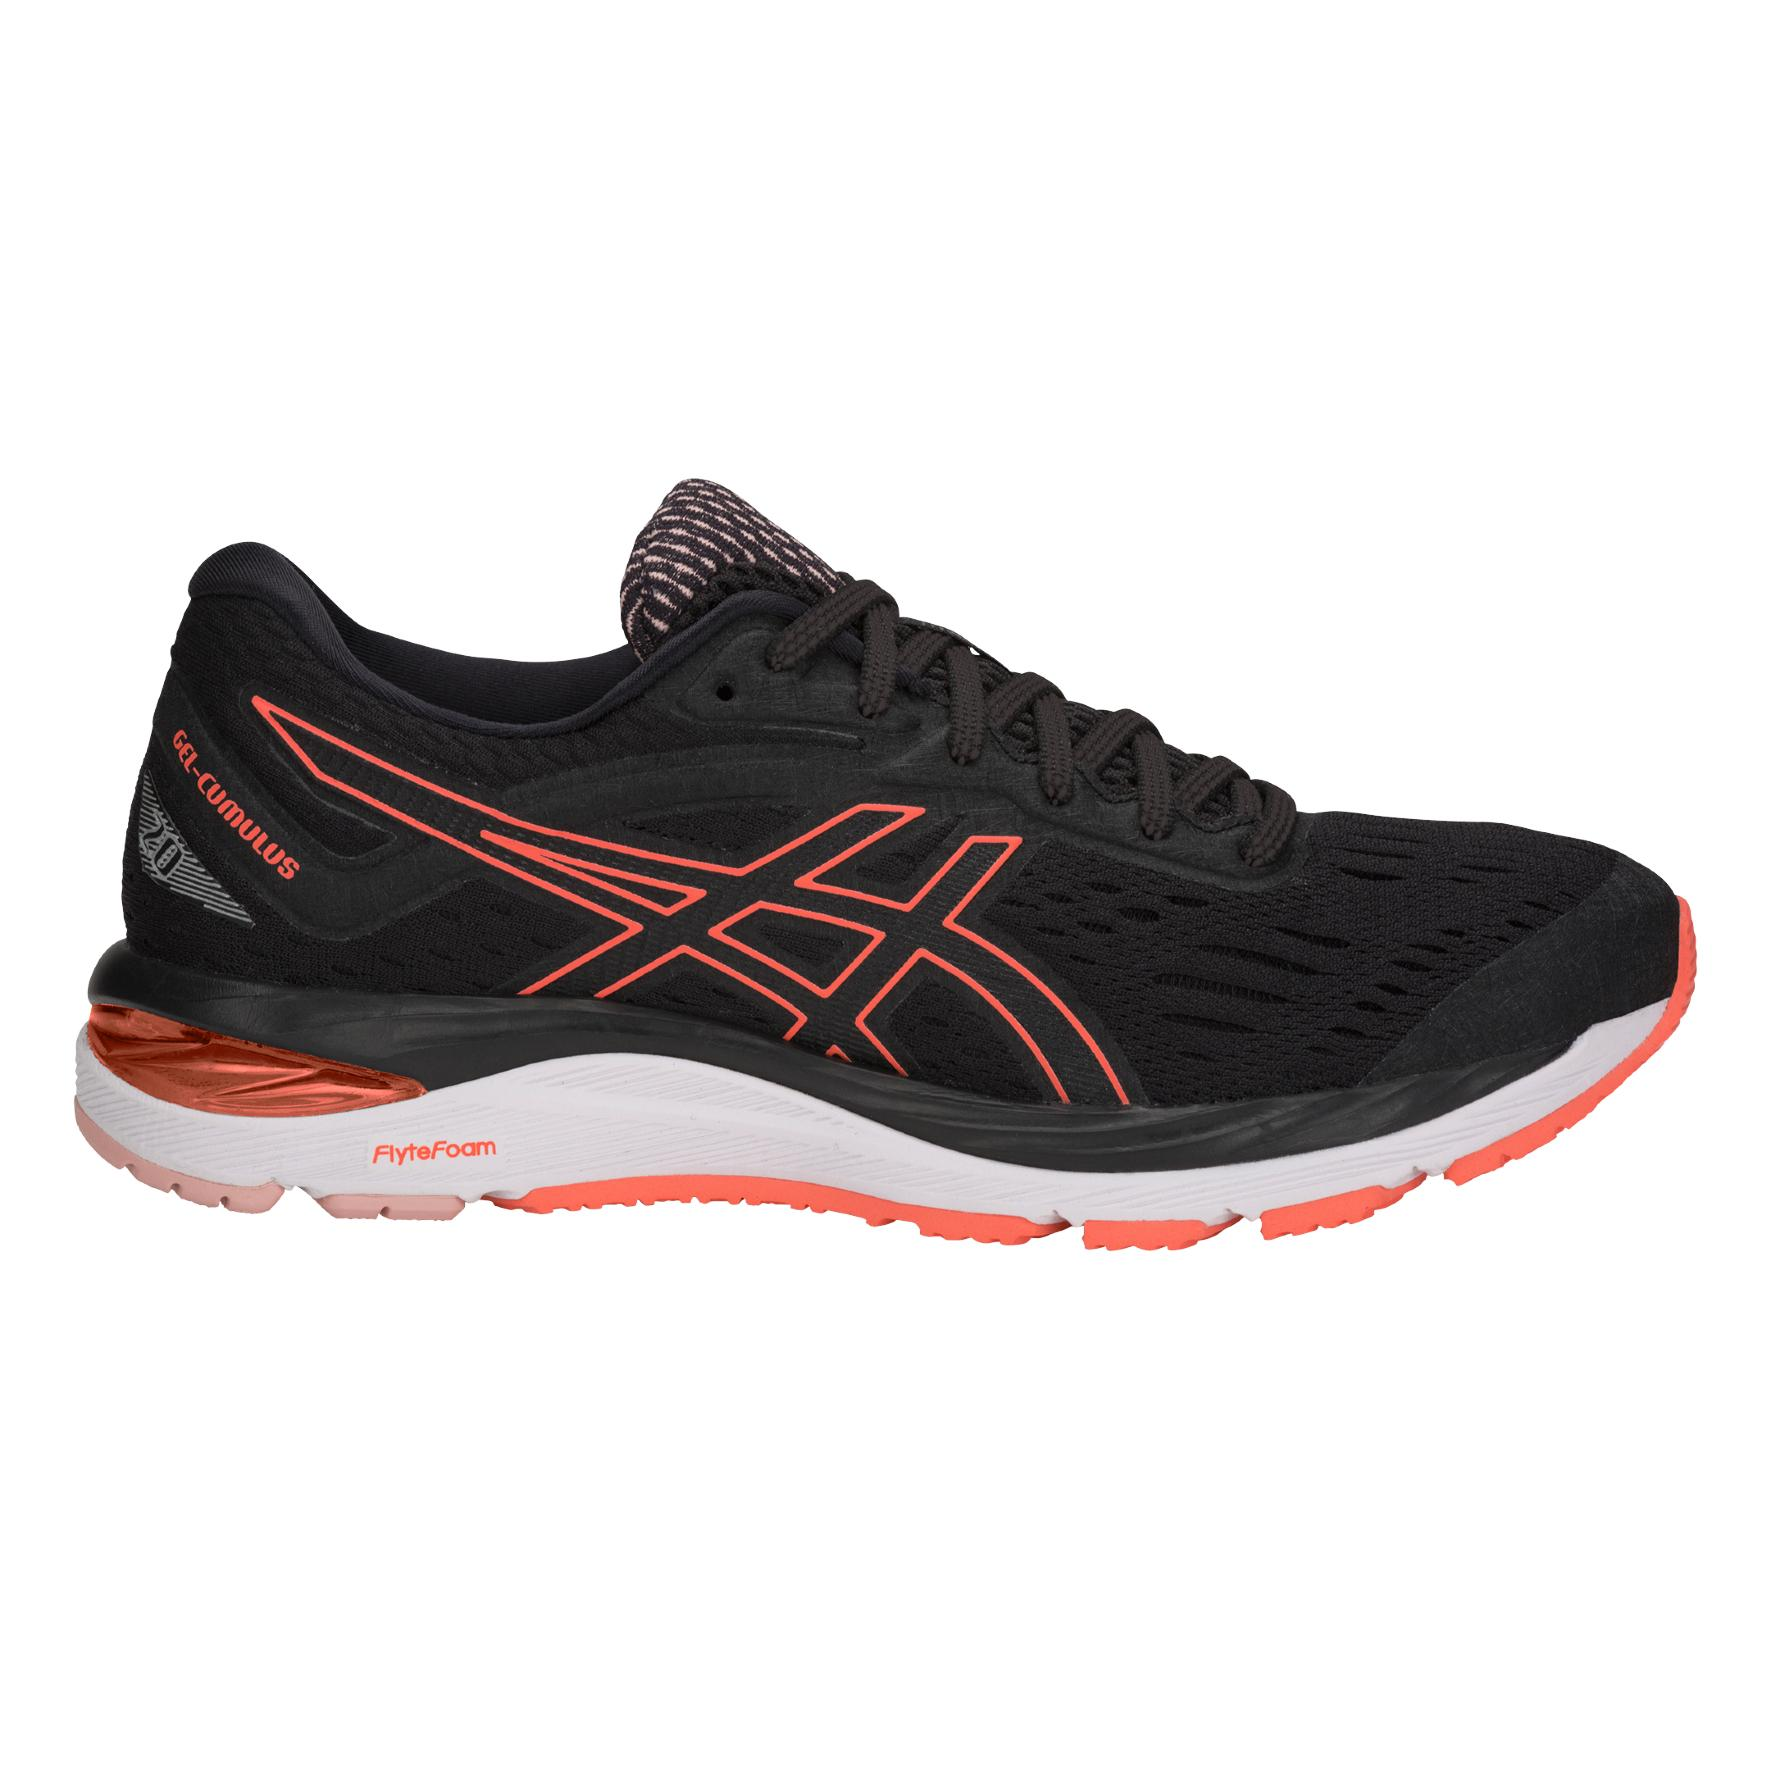 Asics Shoes Gel-cumulus 20 Woman Black flash Coral - Tifoshop.com 216069e16f4